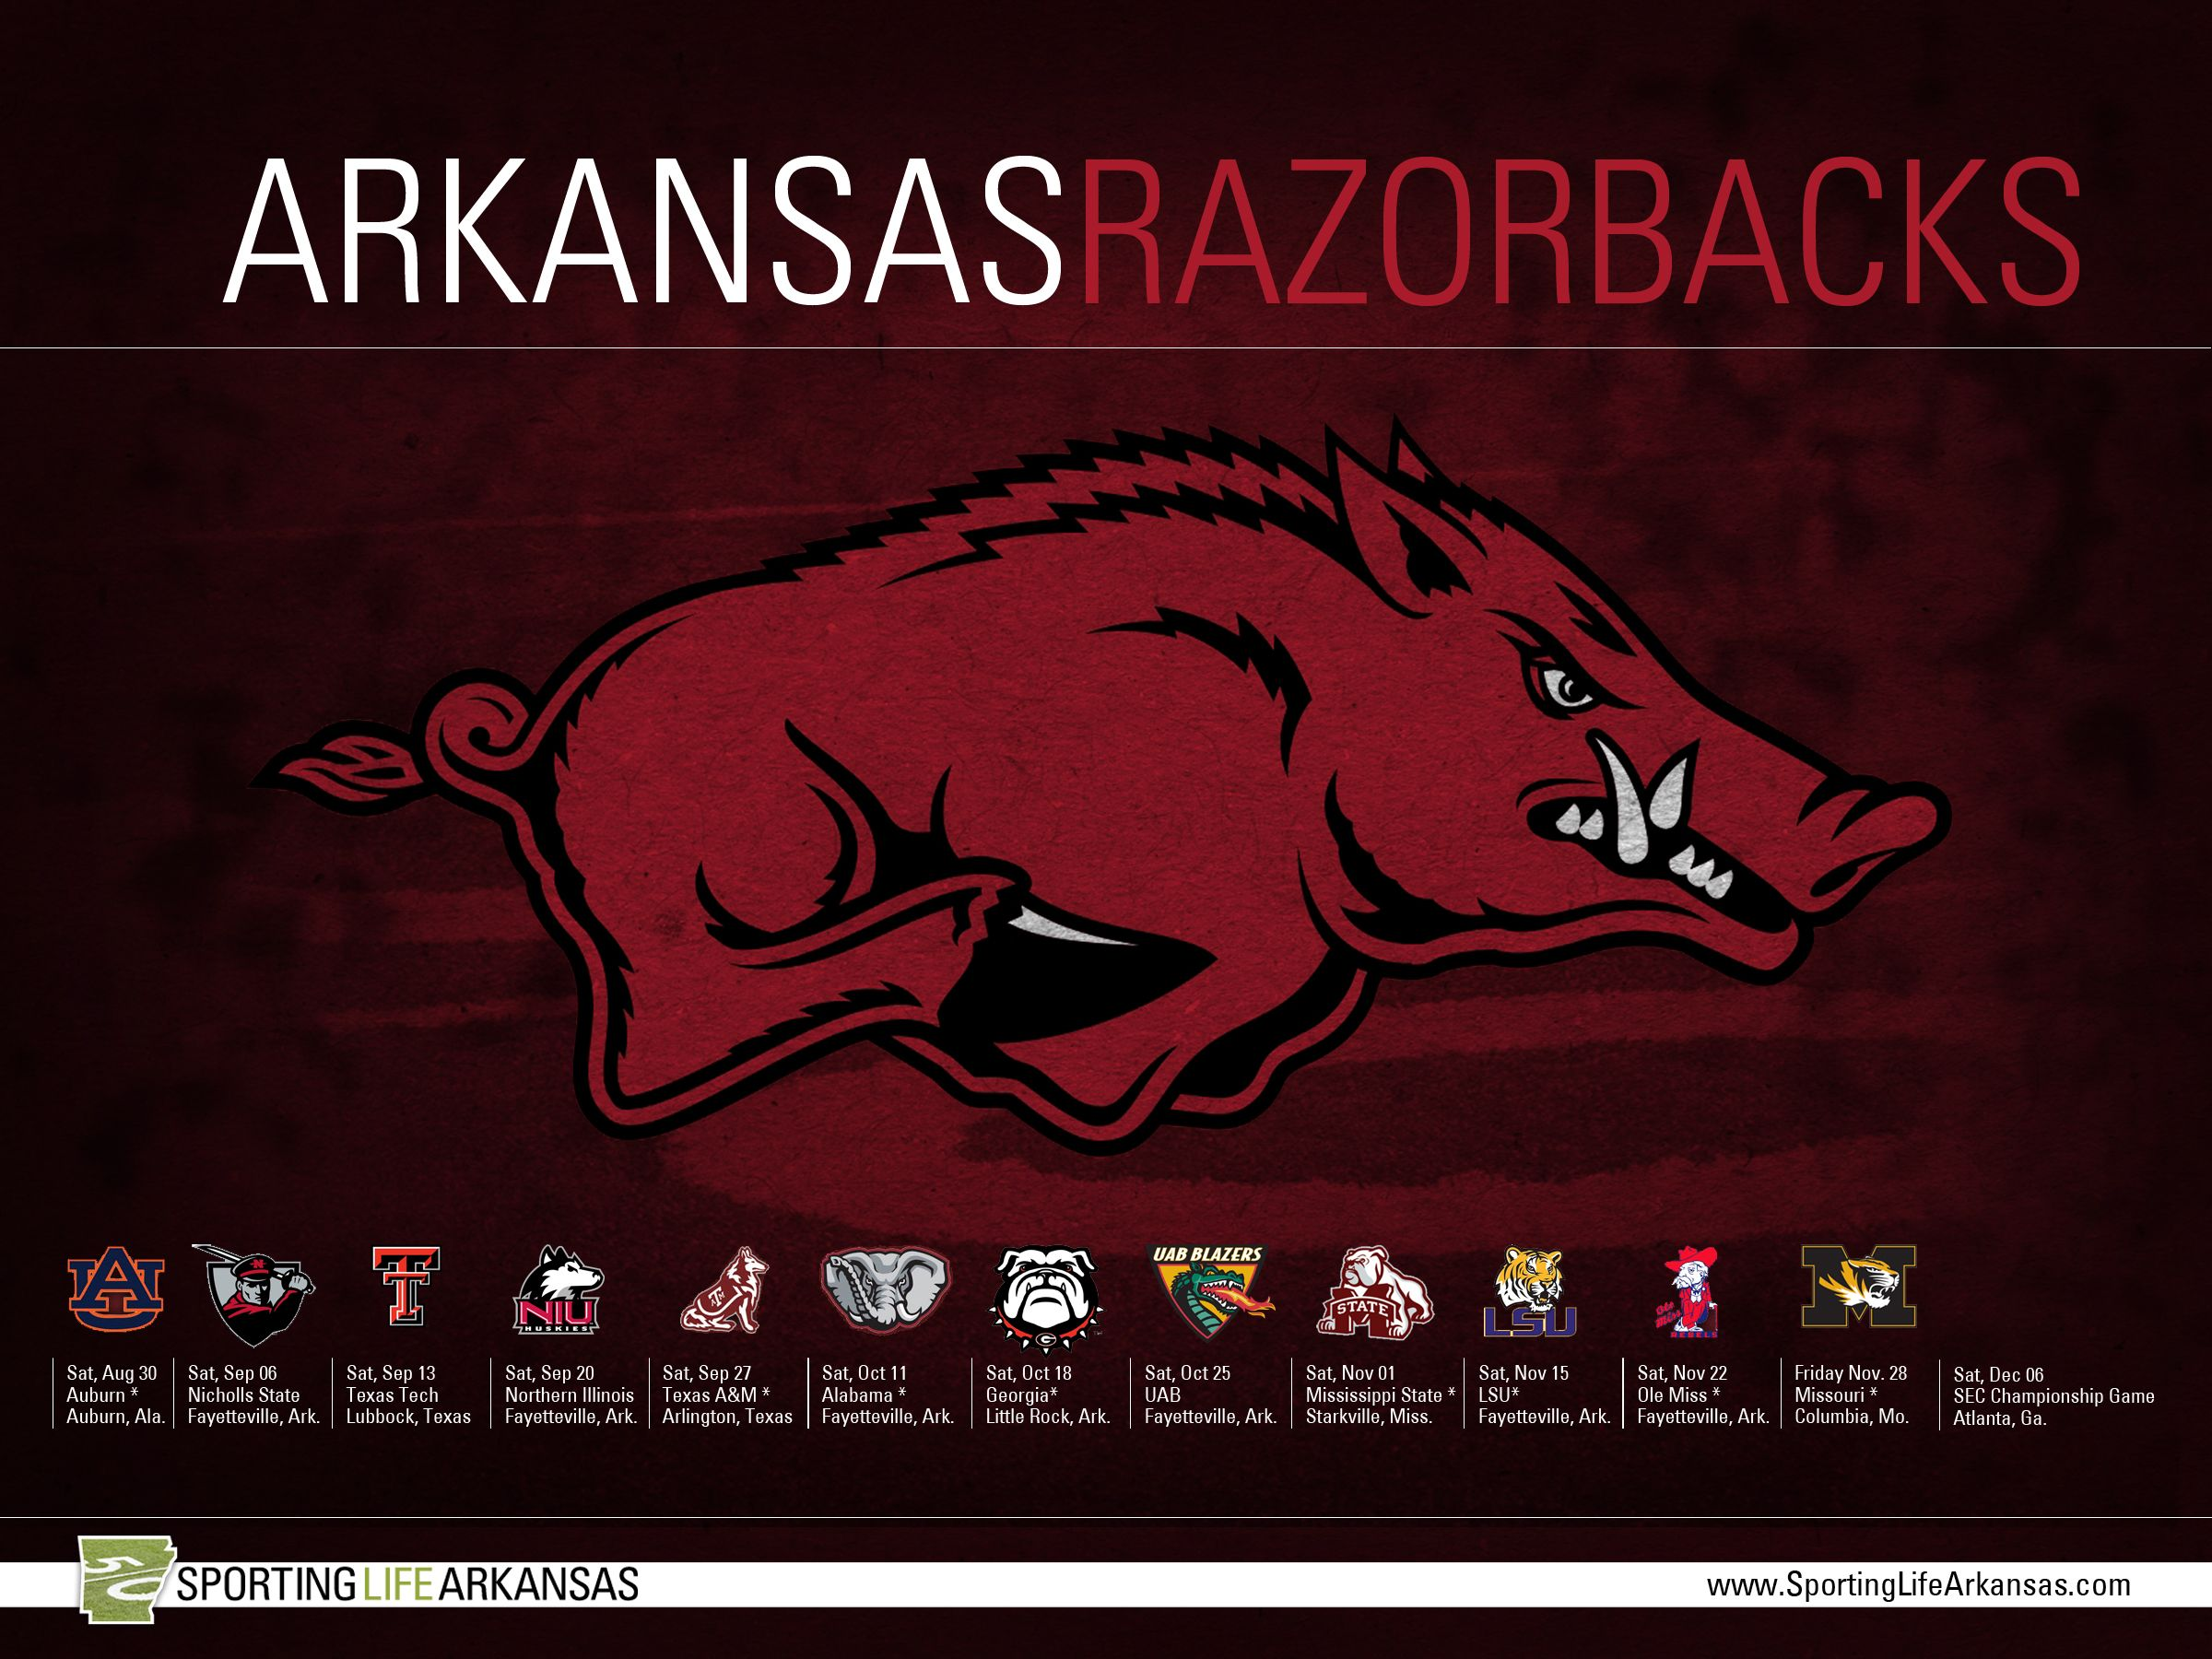 Arkansas Wallpapers Browser Themes More For Razorbacks Fans Arkansas Razorbacks Football Arkansas Razorbacks Football Wallpaper